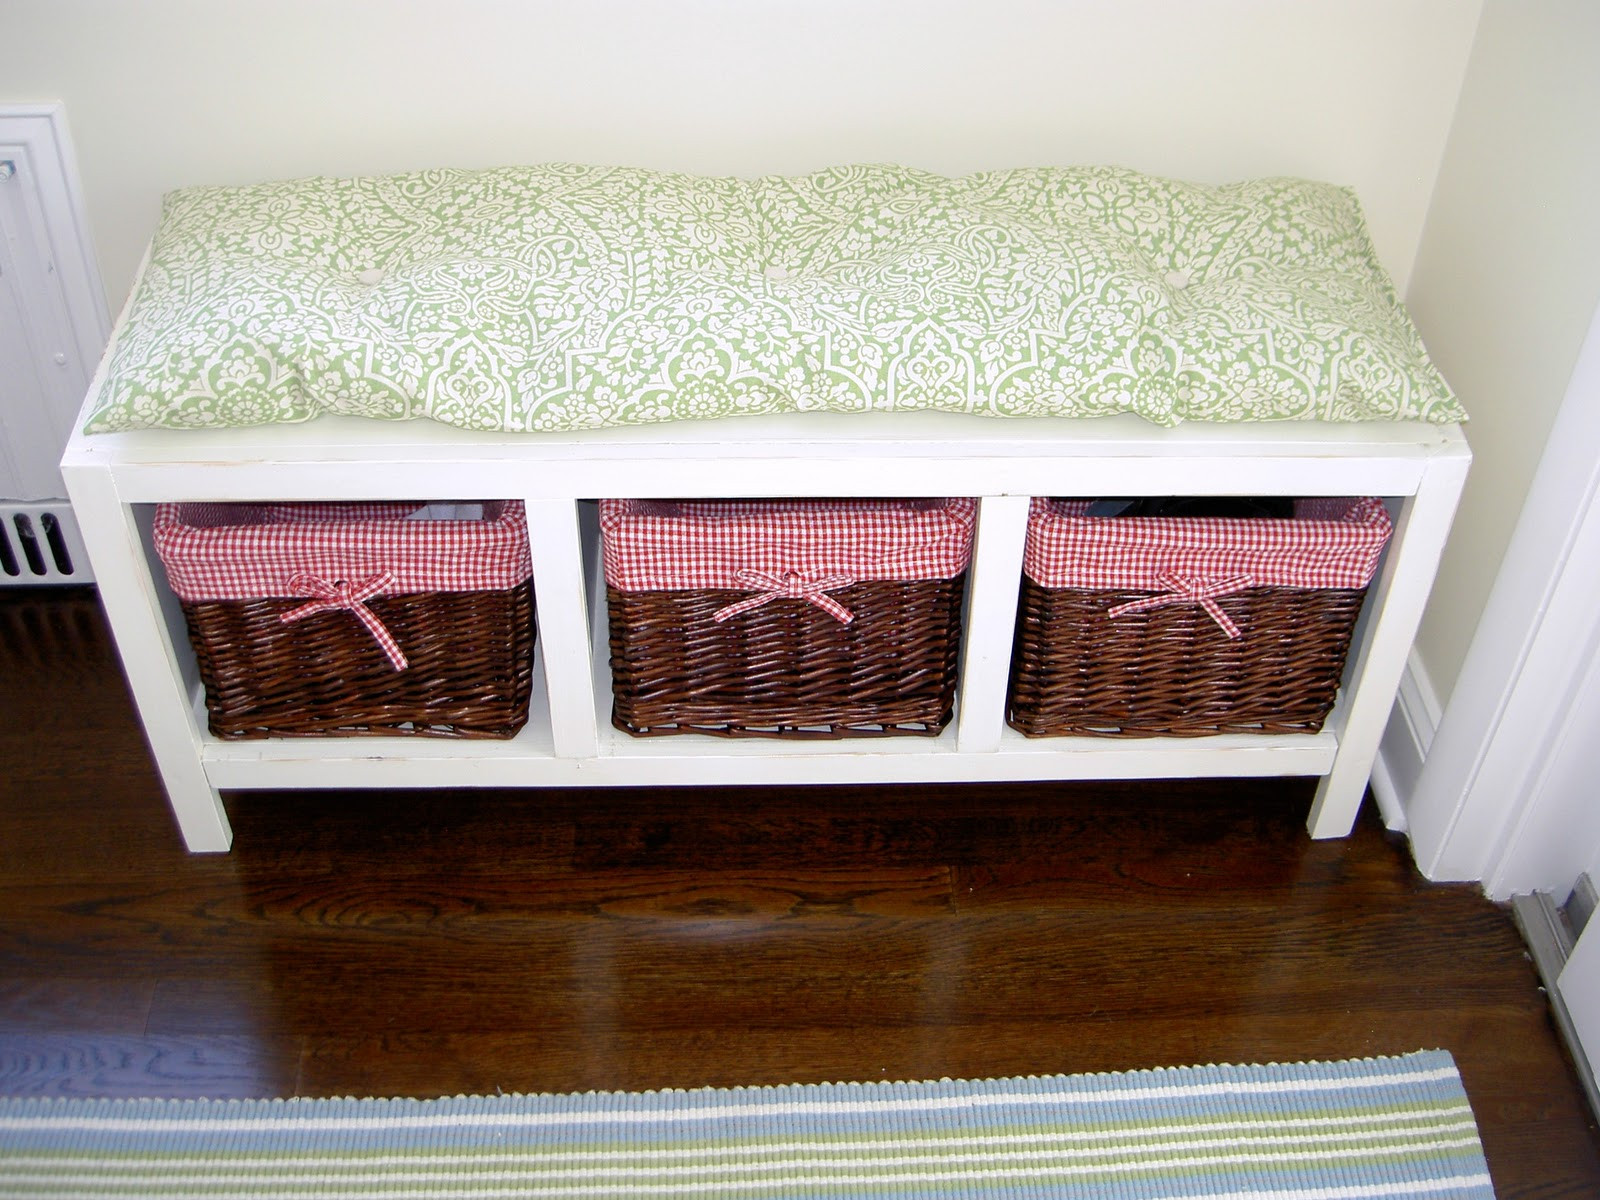 Best ideas about DIY Storage Bench . Save or Pin That s My Letter DIY Bench with Storage Baskets Now.